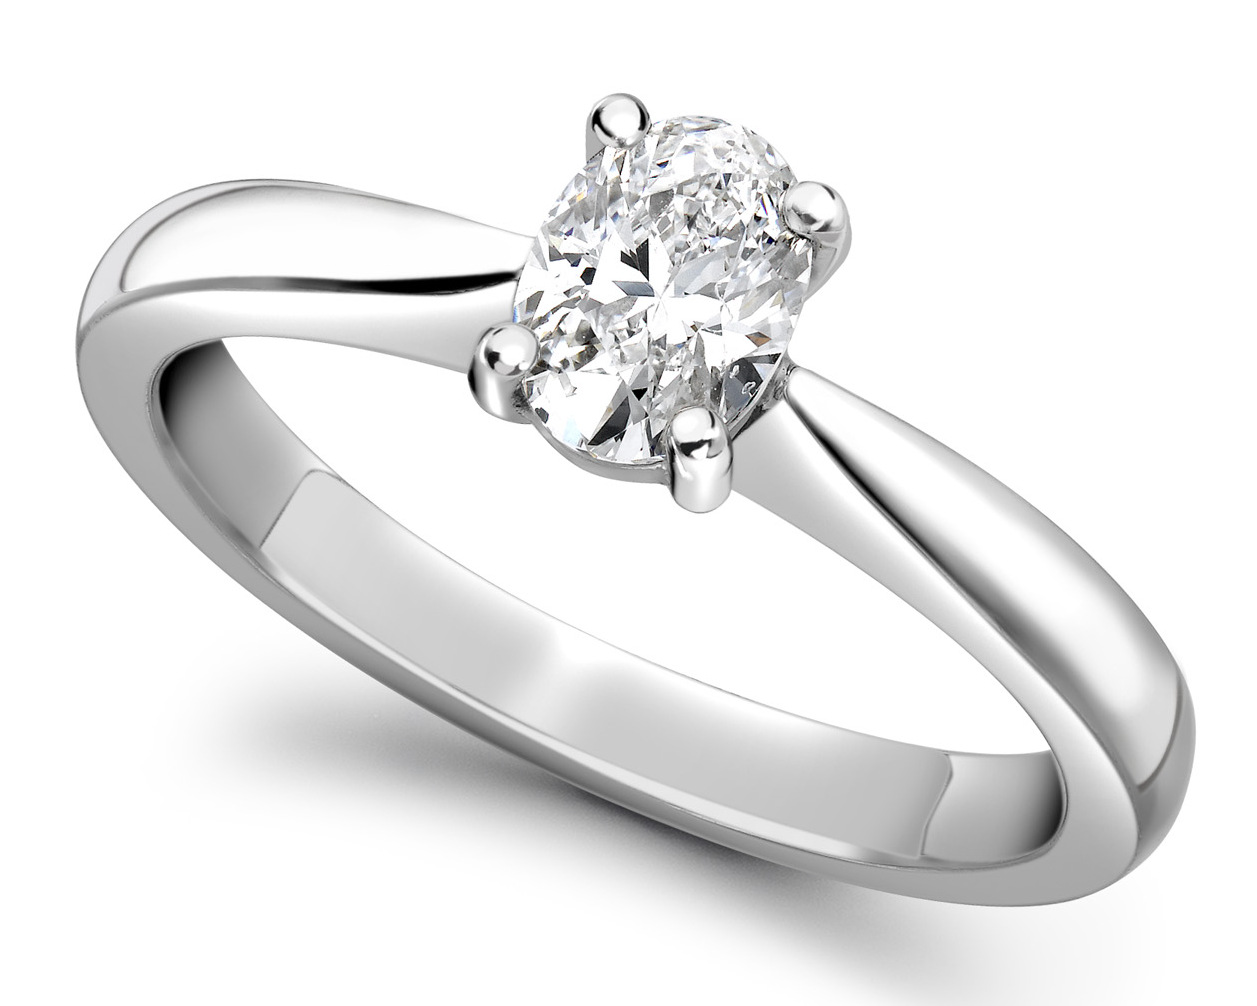 Oval Platinum 950 Diamond Engagement Ring GRC575PLT  Main Image